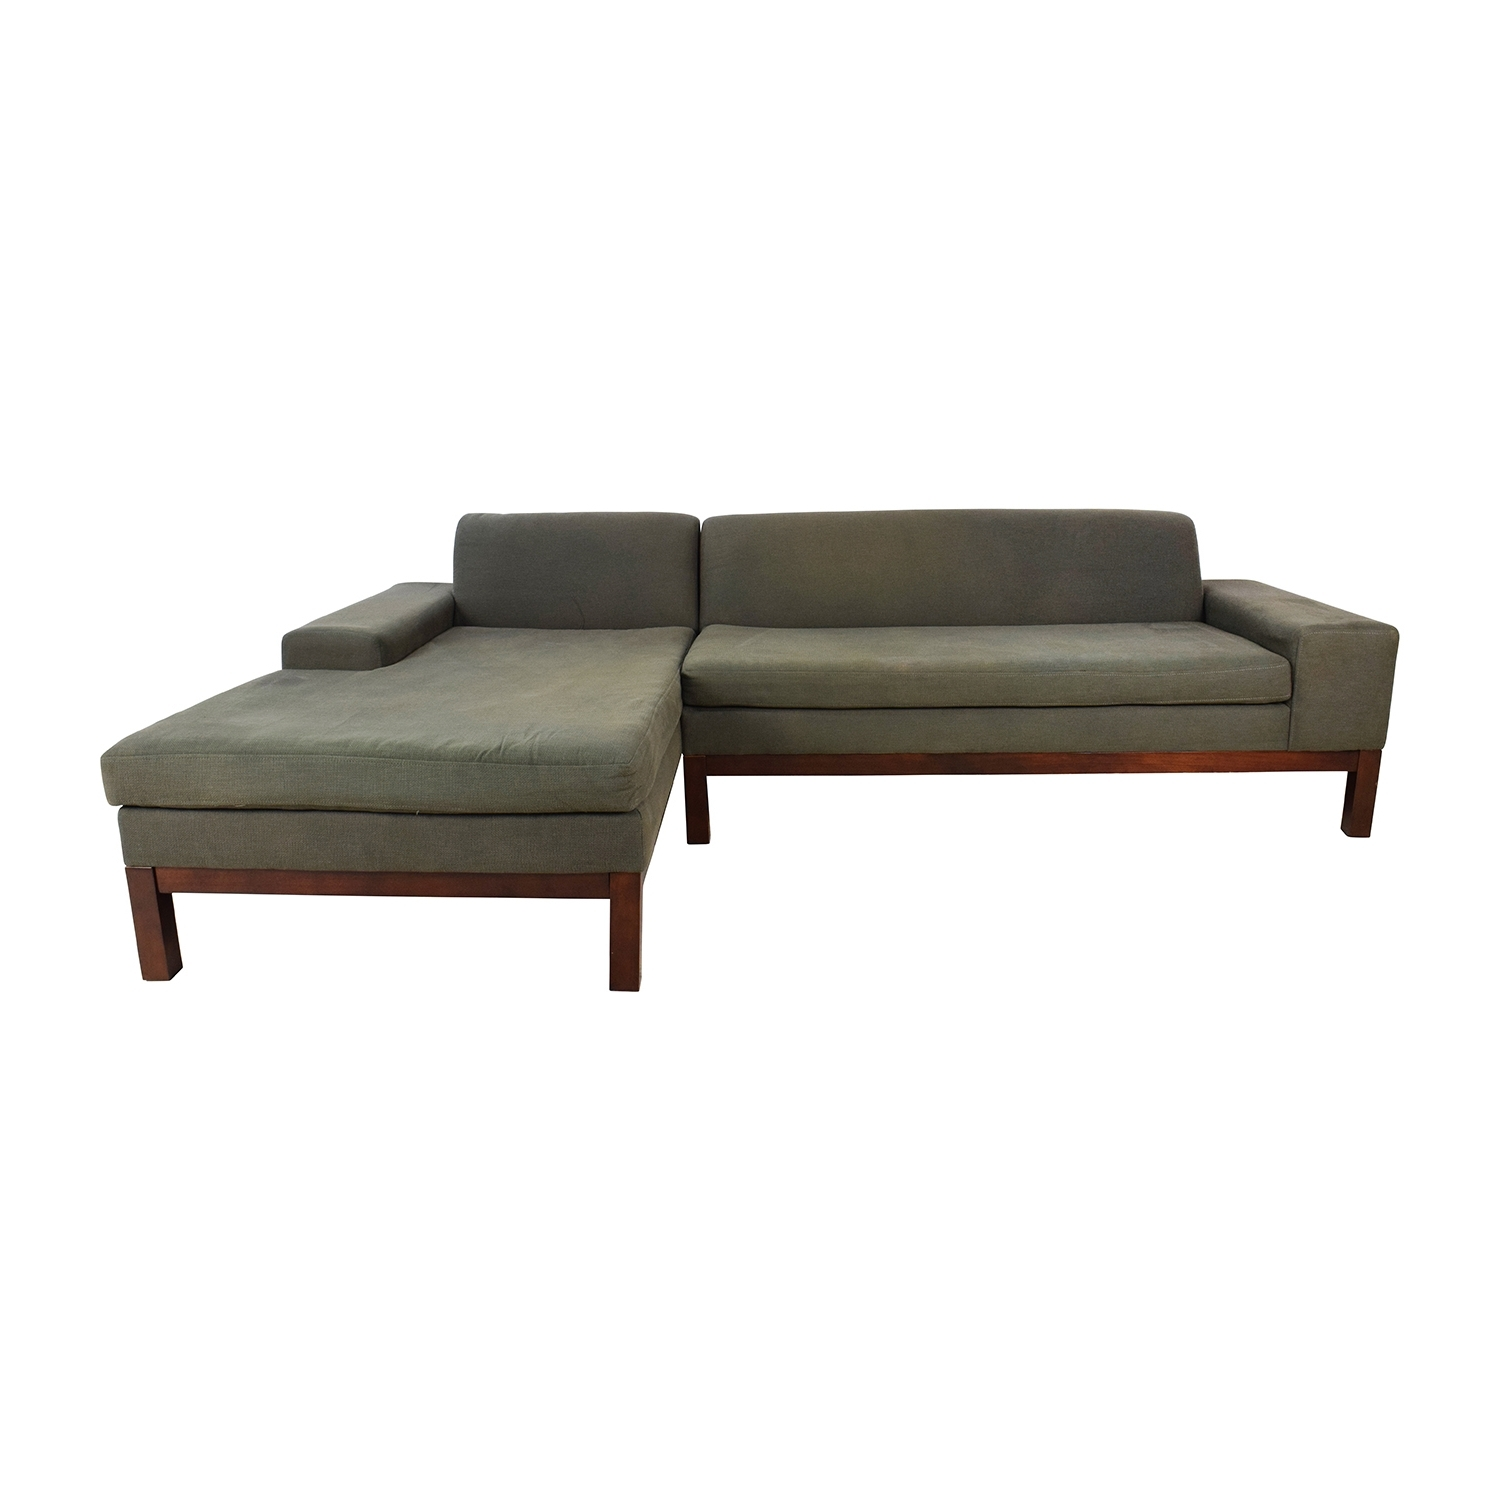 [%86% Off – West Elm West Elm Lorimer Green Sectional / Sofas Intended For Best And Newest Green Sectional Sofas With Chaise|Green Sectional Sofas With Chaise With Regard To Preferred 86% Off – West Elm West Elm Lorimer Green Sectional / Sofas|Well Known Green Sectional Sofas With Chaise Intended For 86% Off – West Elm West Elm Lorimer Green Sectional / Sofas|Most Up To Date 86% Off – West Elm West Elm Lorimer Green Sectional / Sofas Inside Green Sectional Sofas With Chaise%] (View 20 of 20)